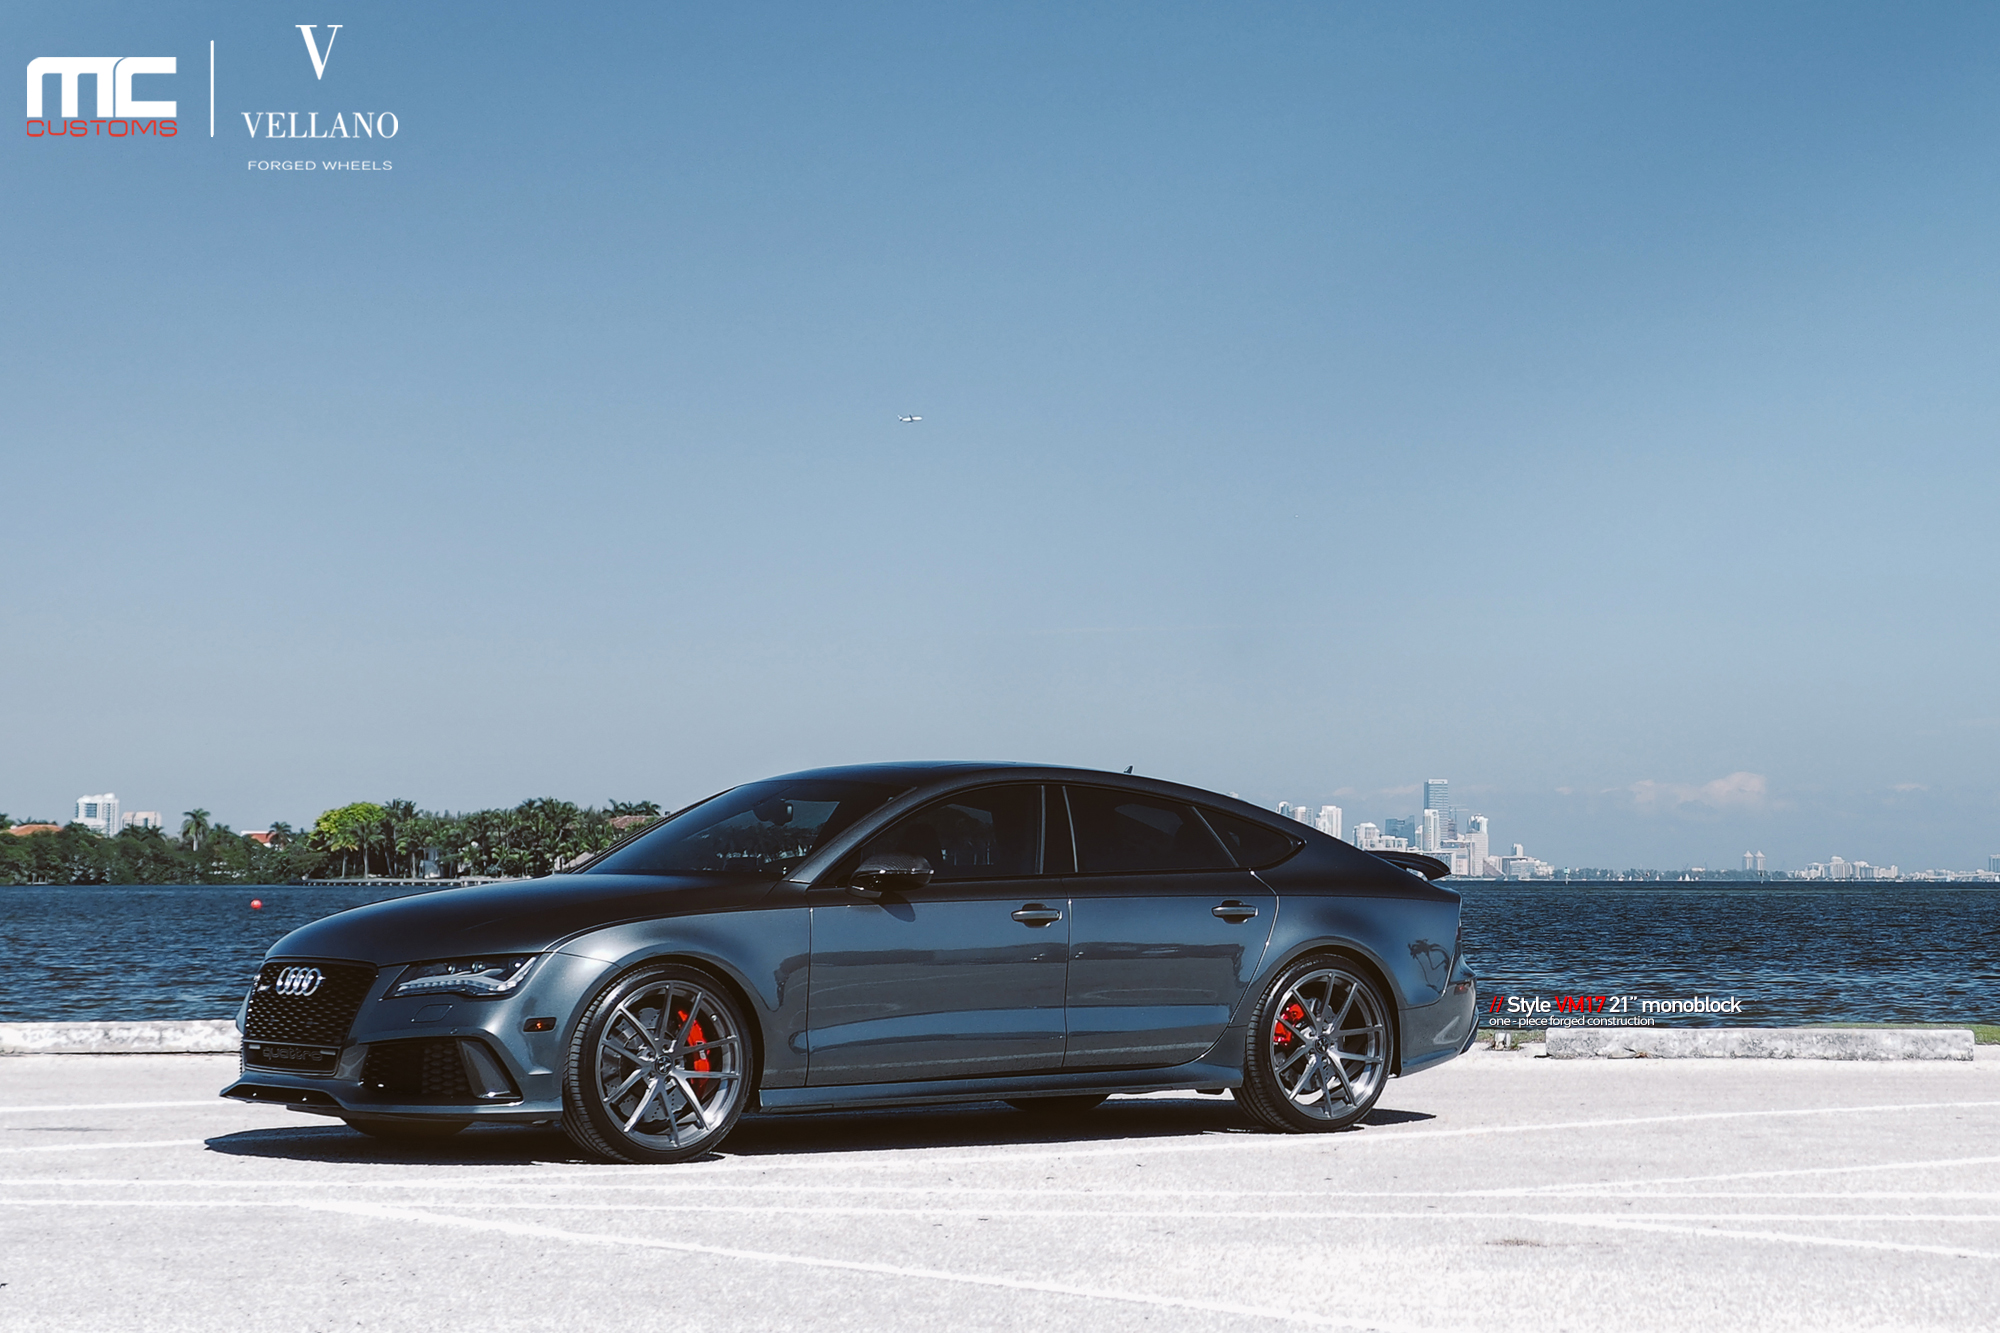 2014 Audi Rs7 On Vellano Wheels By Mc Customs Rides Magazine